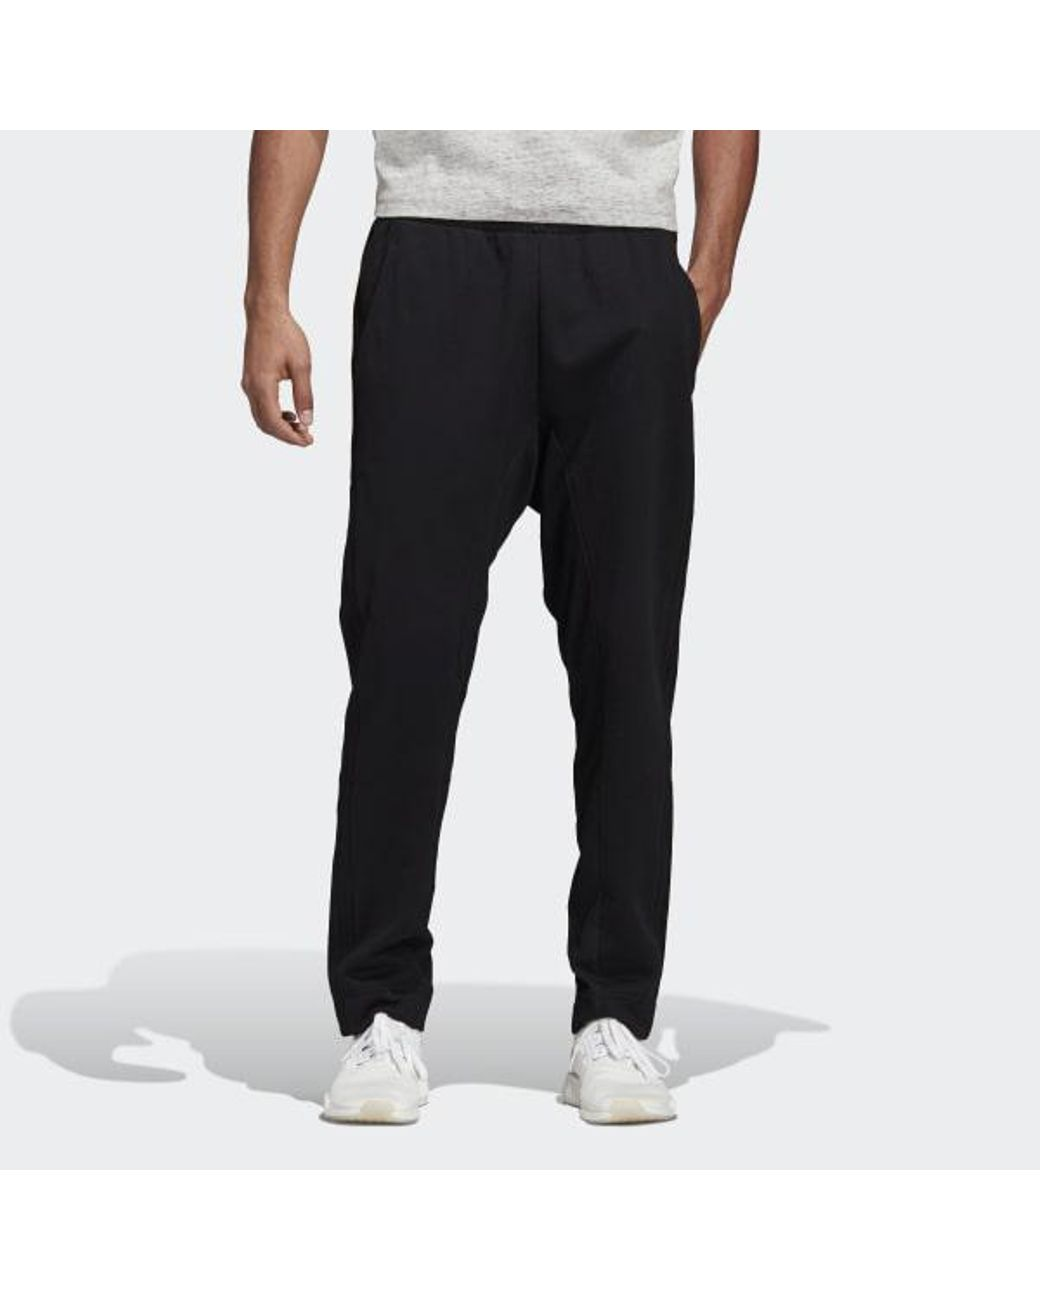 19f587d1e0a4 Lyst - adidas Pt3 Sweat Pants in Black for Men